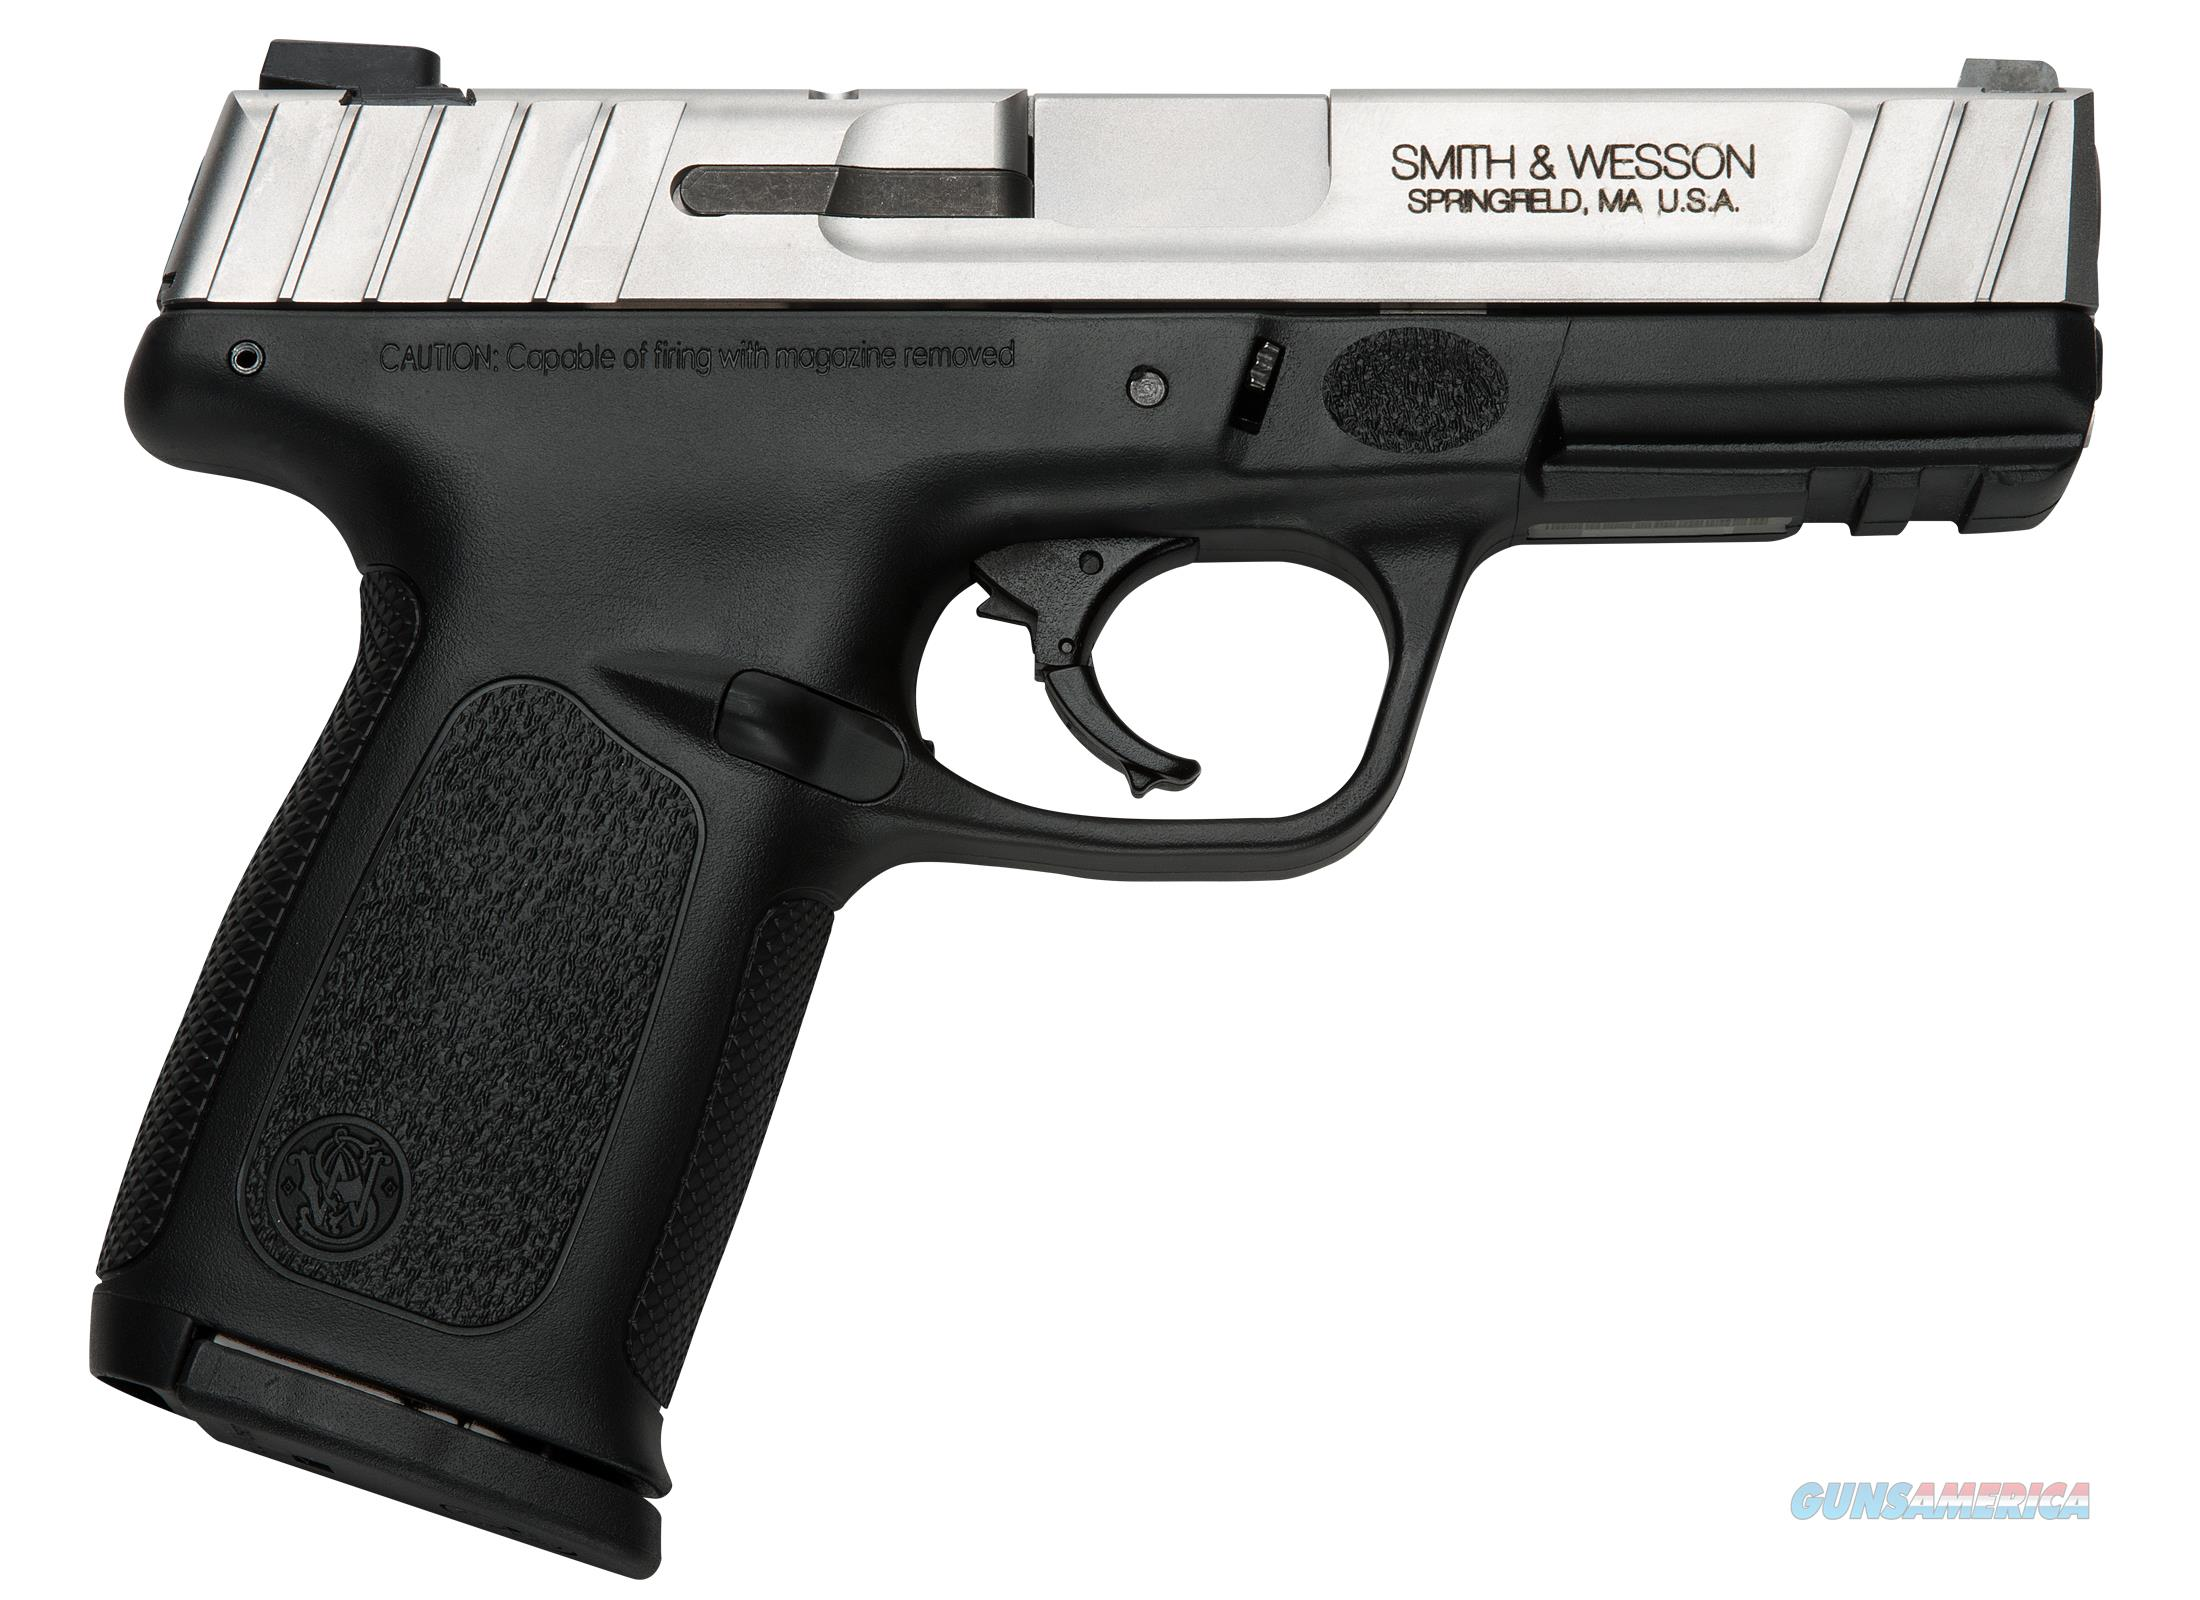 Smith and Wesson SD9VE 9mm Striker 17 Round Pistol - 223900  Guns > Pistols > Smith & Wesson Pistols - Autos > Polymer Frame